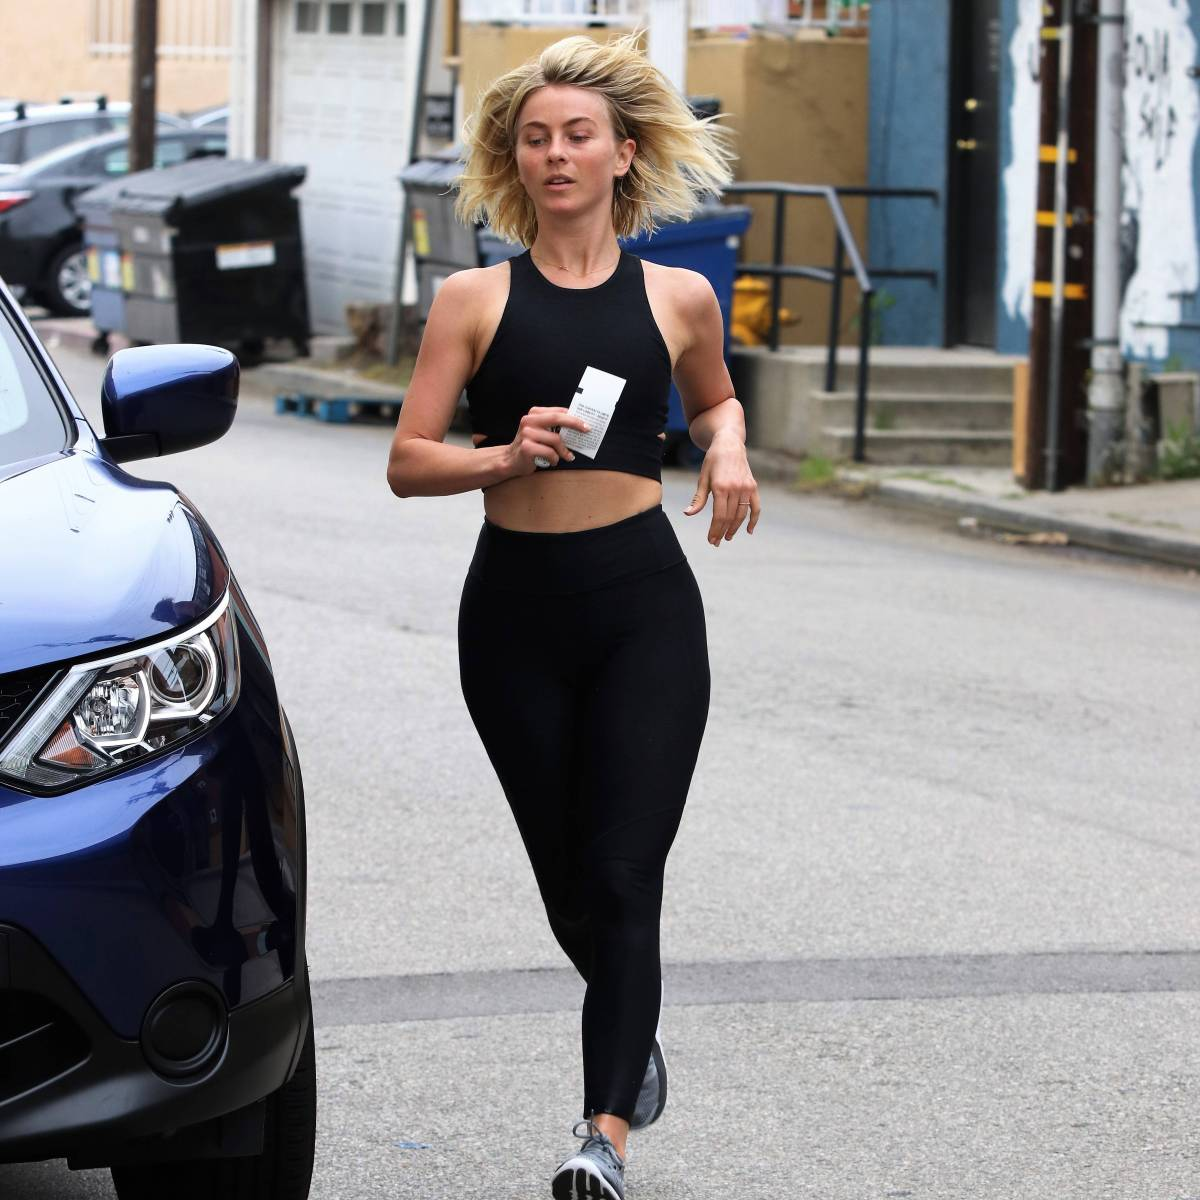 Julianne Hough's Workout Photos Will Inspire You to Hit the Gym!